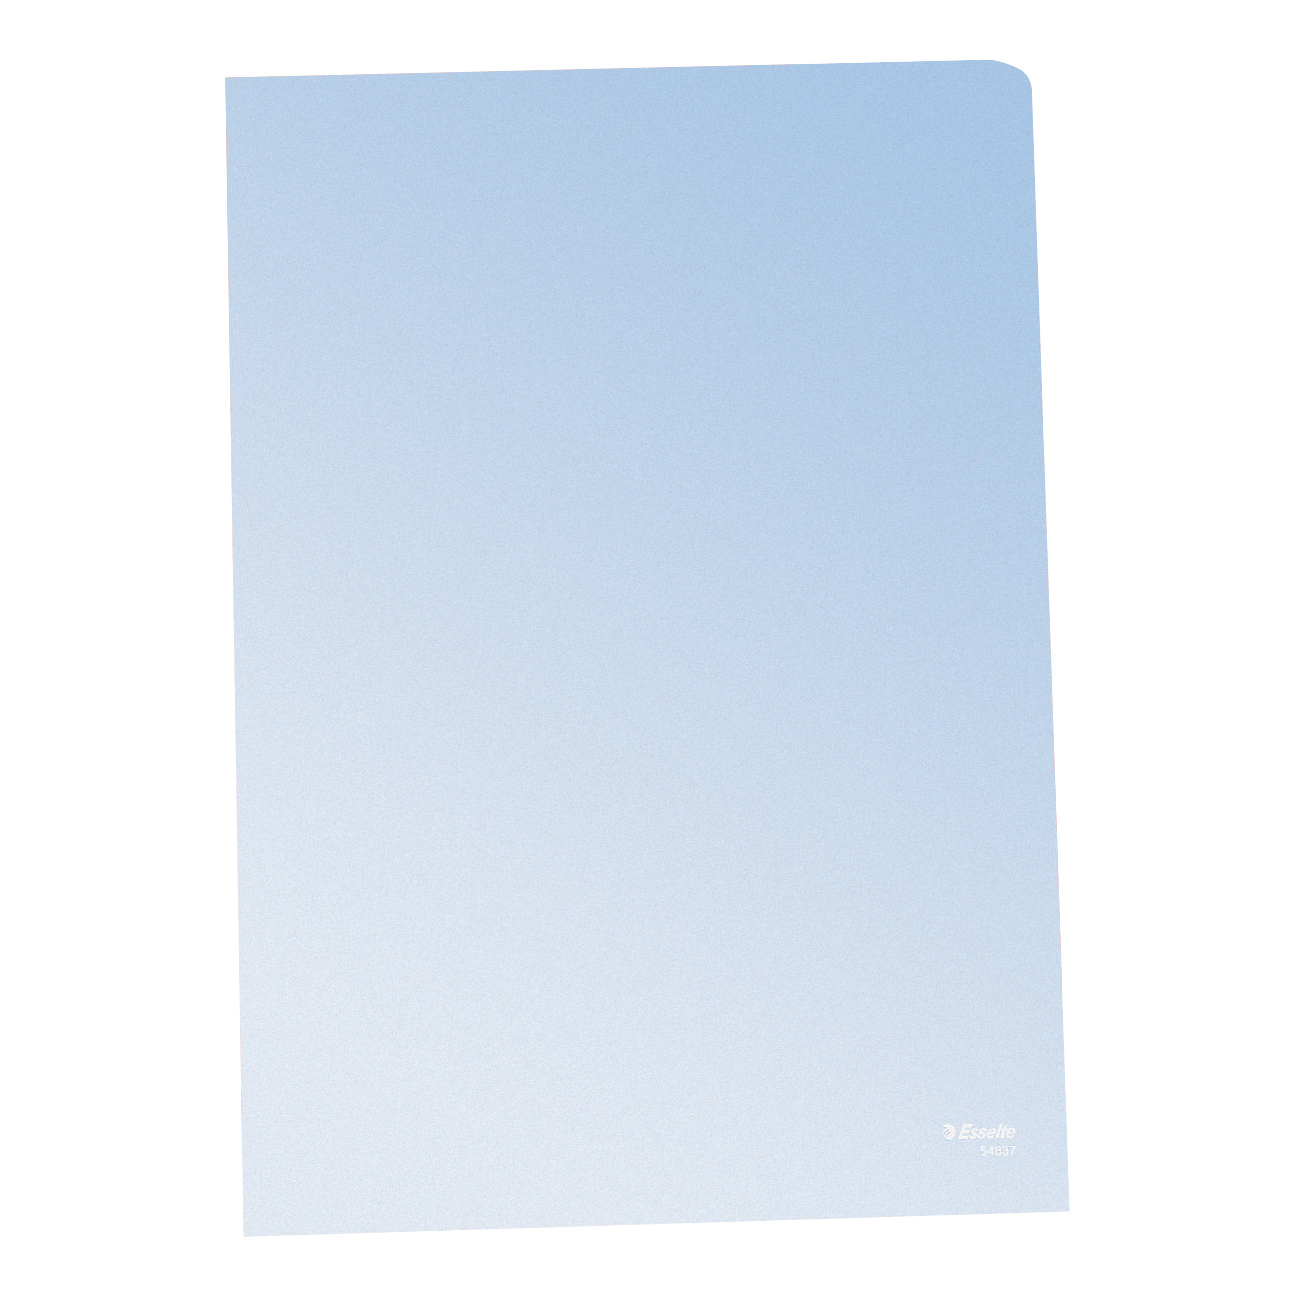 Esselte Copy-safe Folder Plastic Cut Flush A4 Clear Ref 54830/54832 Pack 100